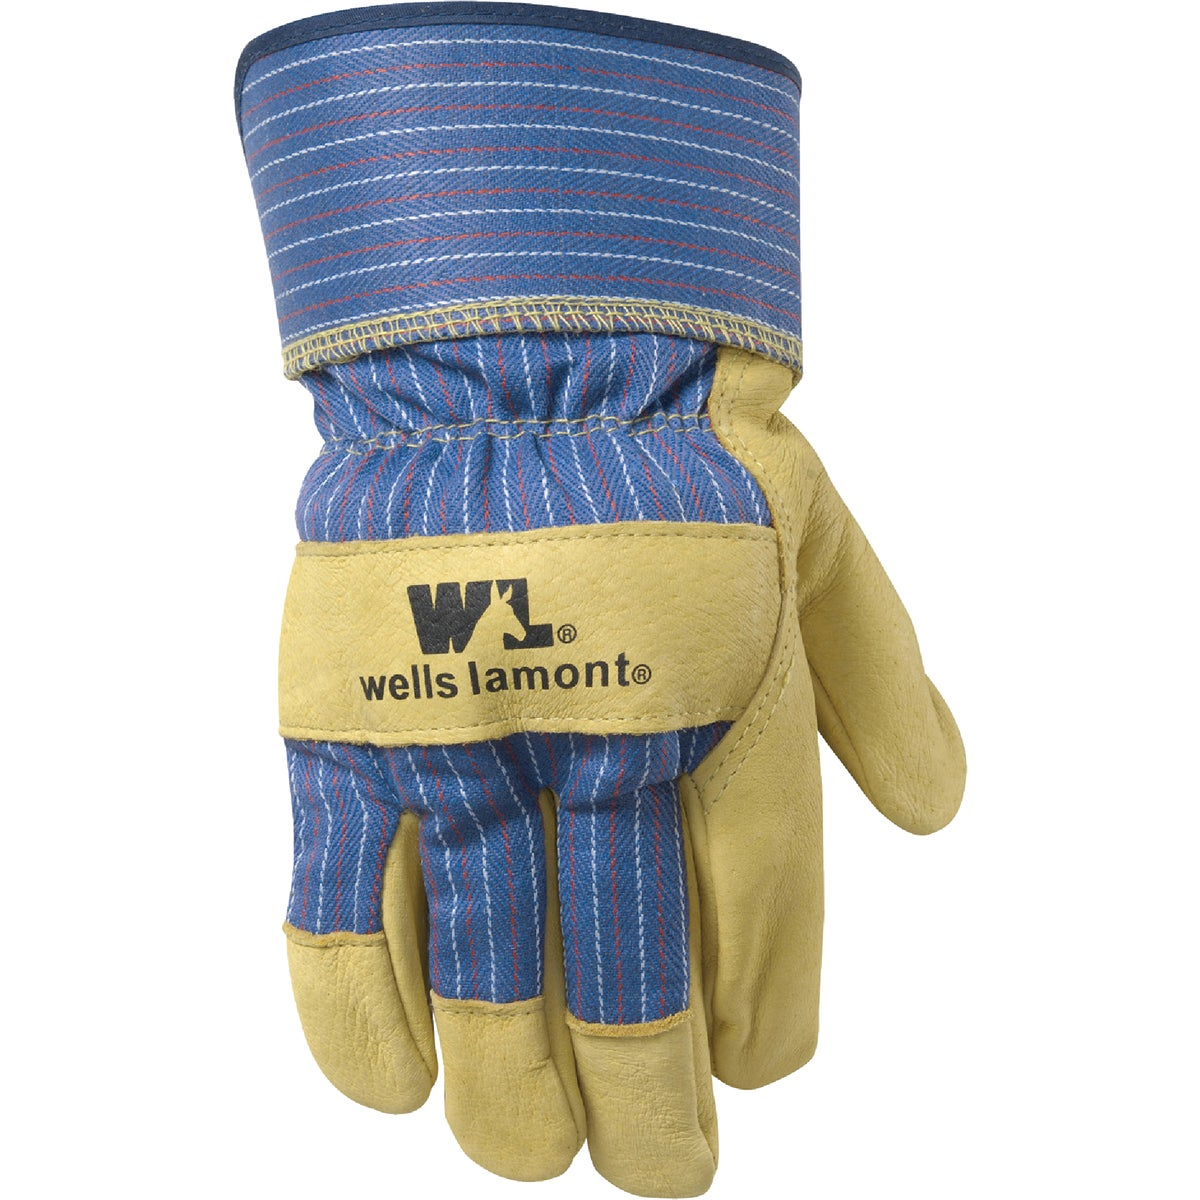 LRG PIGSKIN PALM GLOVE - 3300L by Wells Lamont